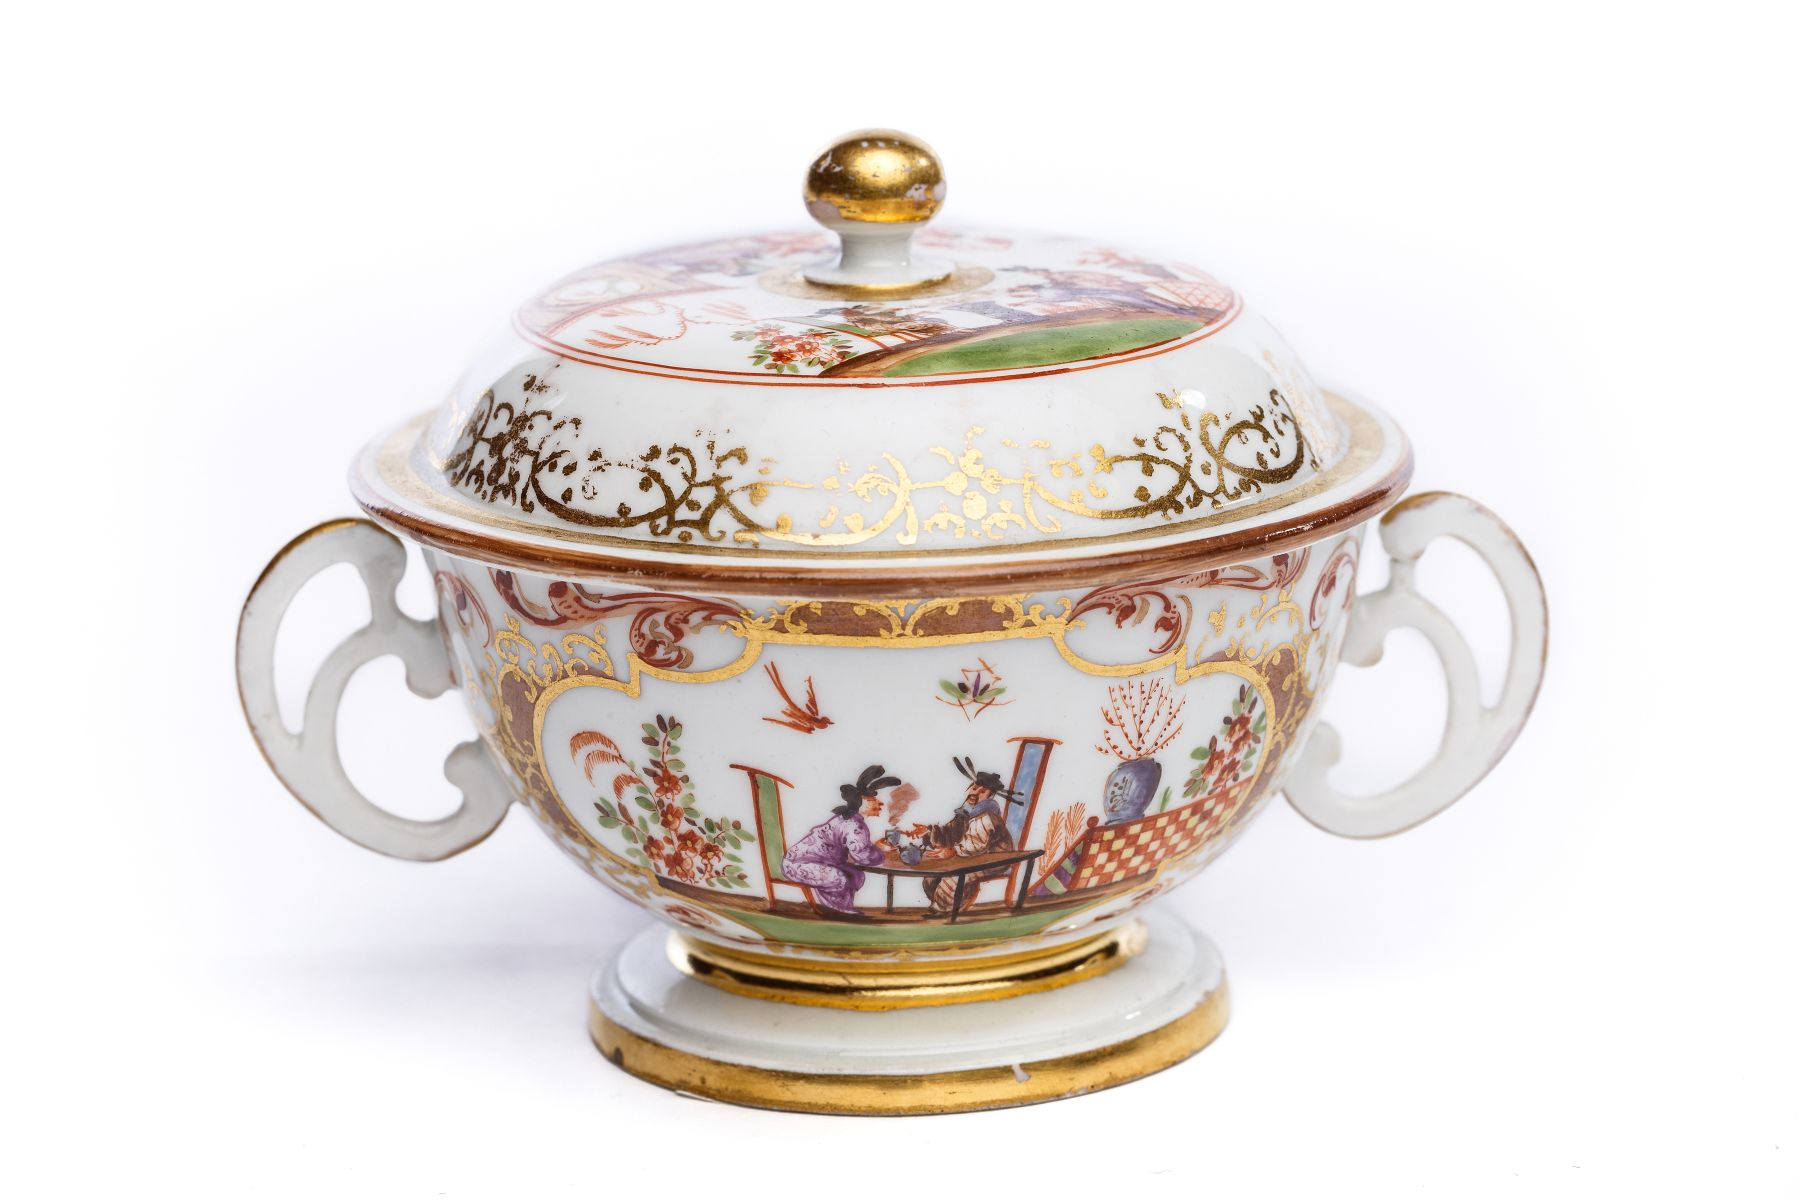 #10 Small, two-handled tureen with lid, Meissen 1725 | Kleine Suppenschale, Meissen 1725 Image